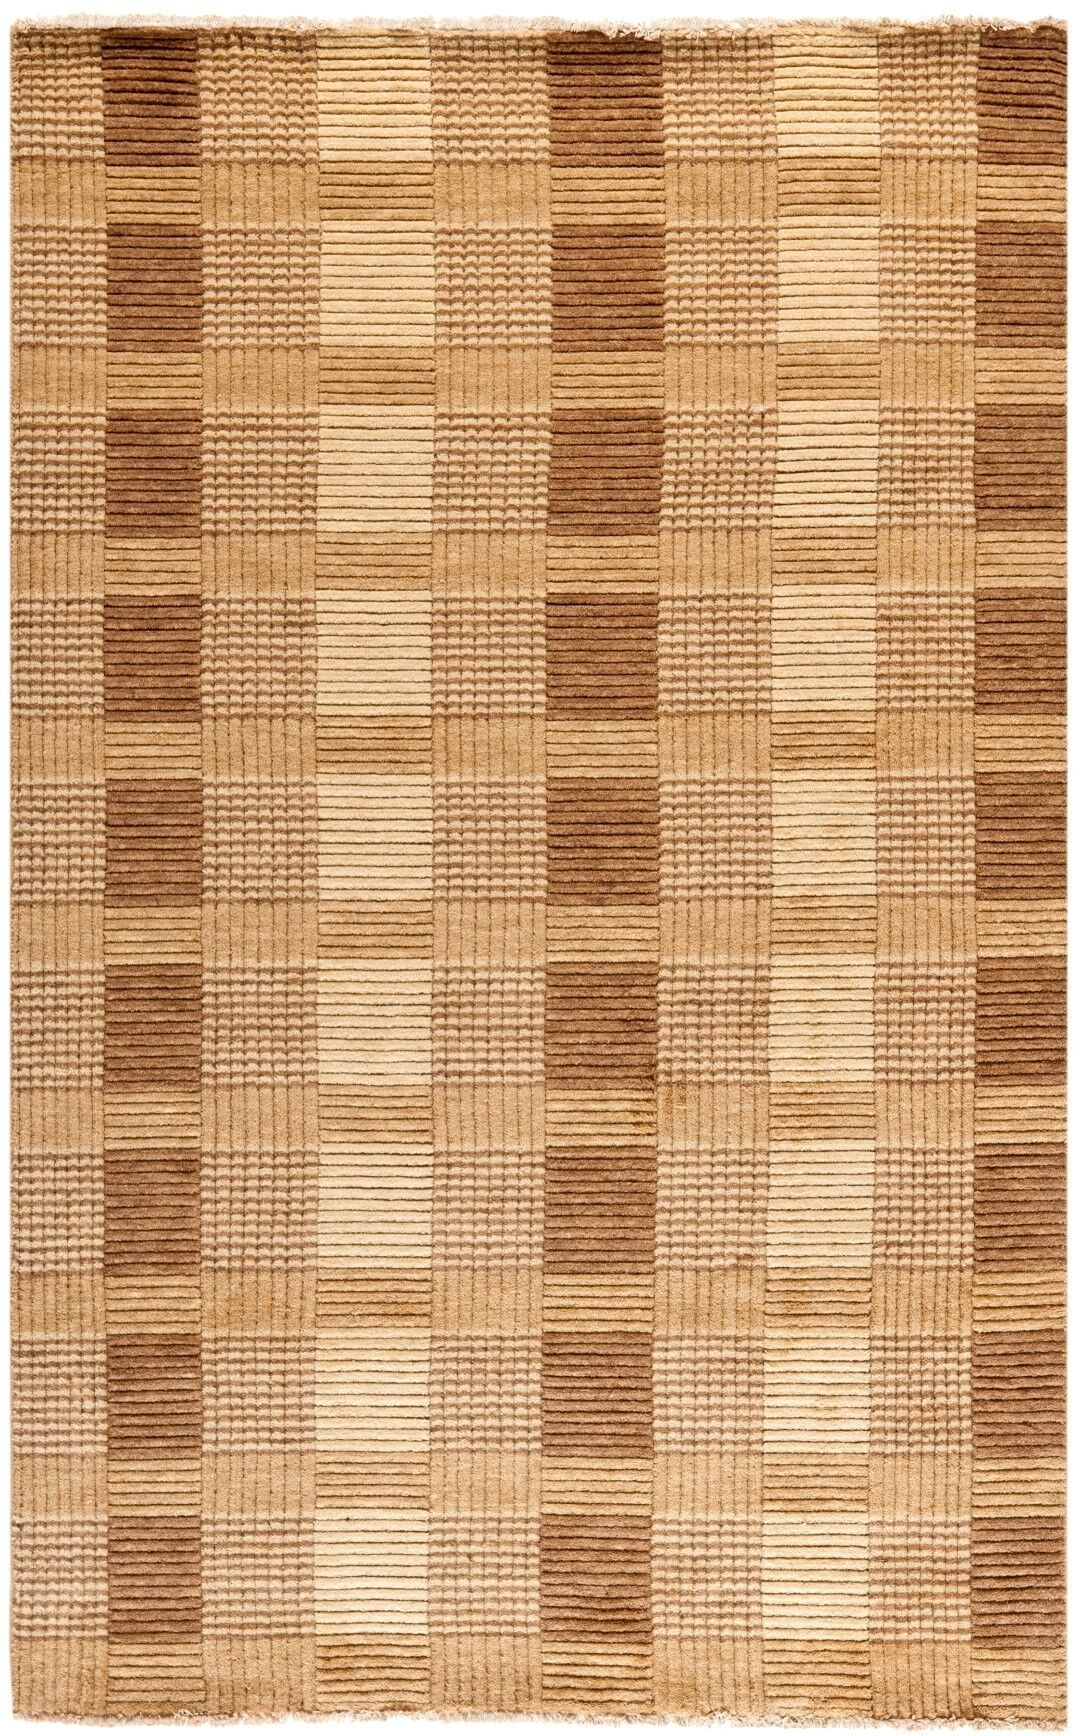 Apple Creek Hand-Knotted Brown Area Rug Rug Size: Runner 2' x 8'